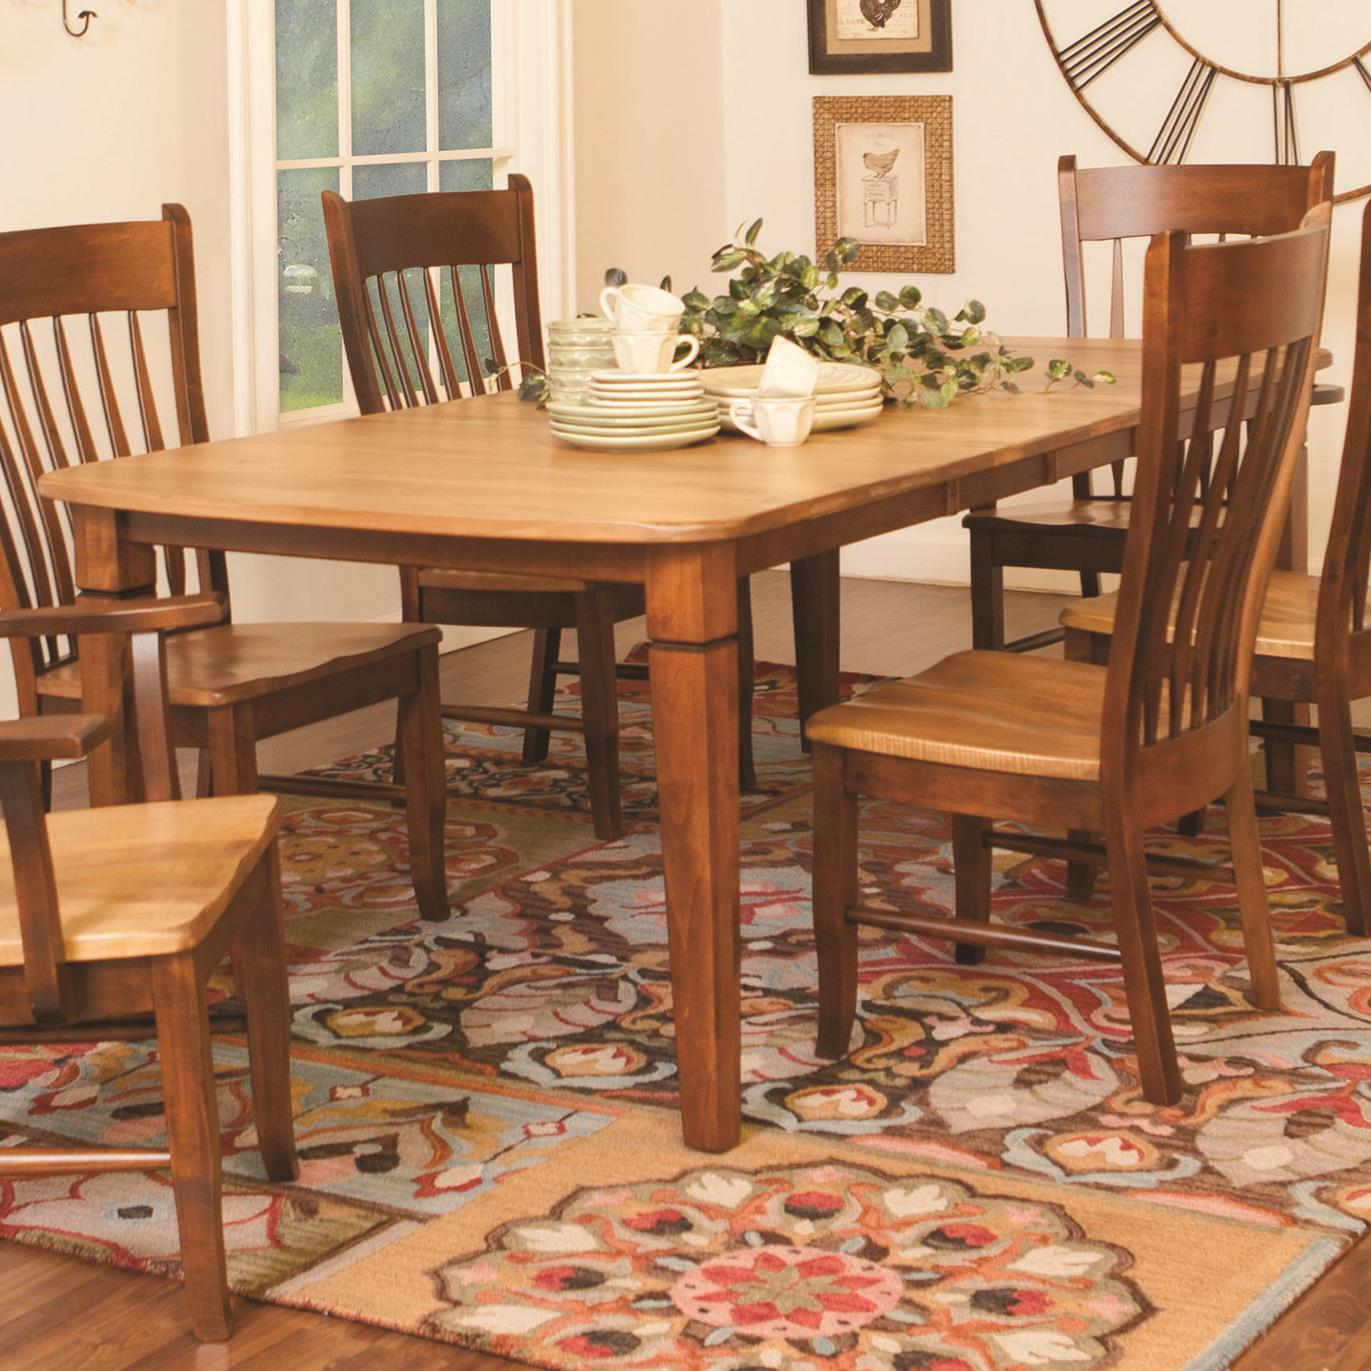 Daniel's Amish Tables Distressed Rectangular Dining Table